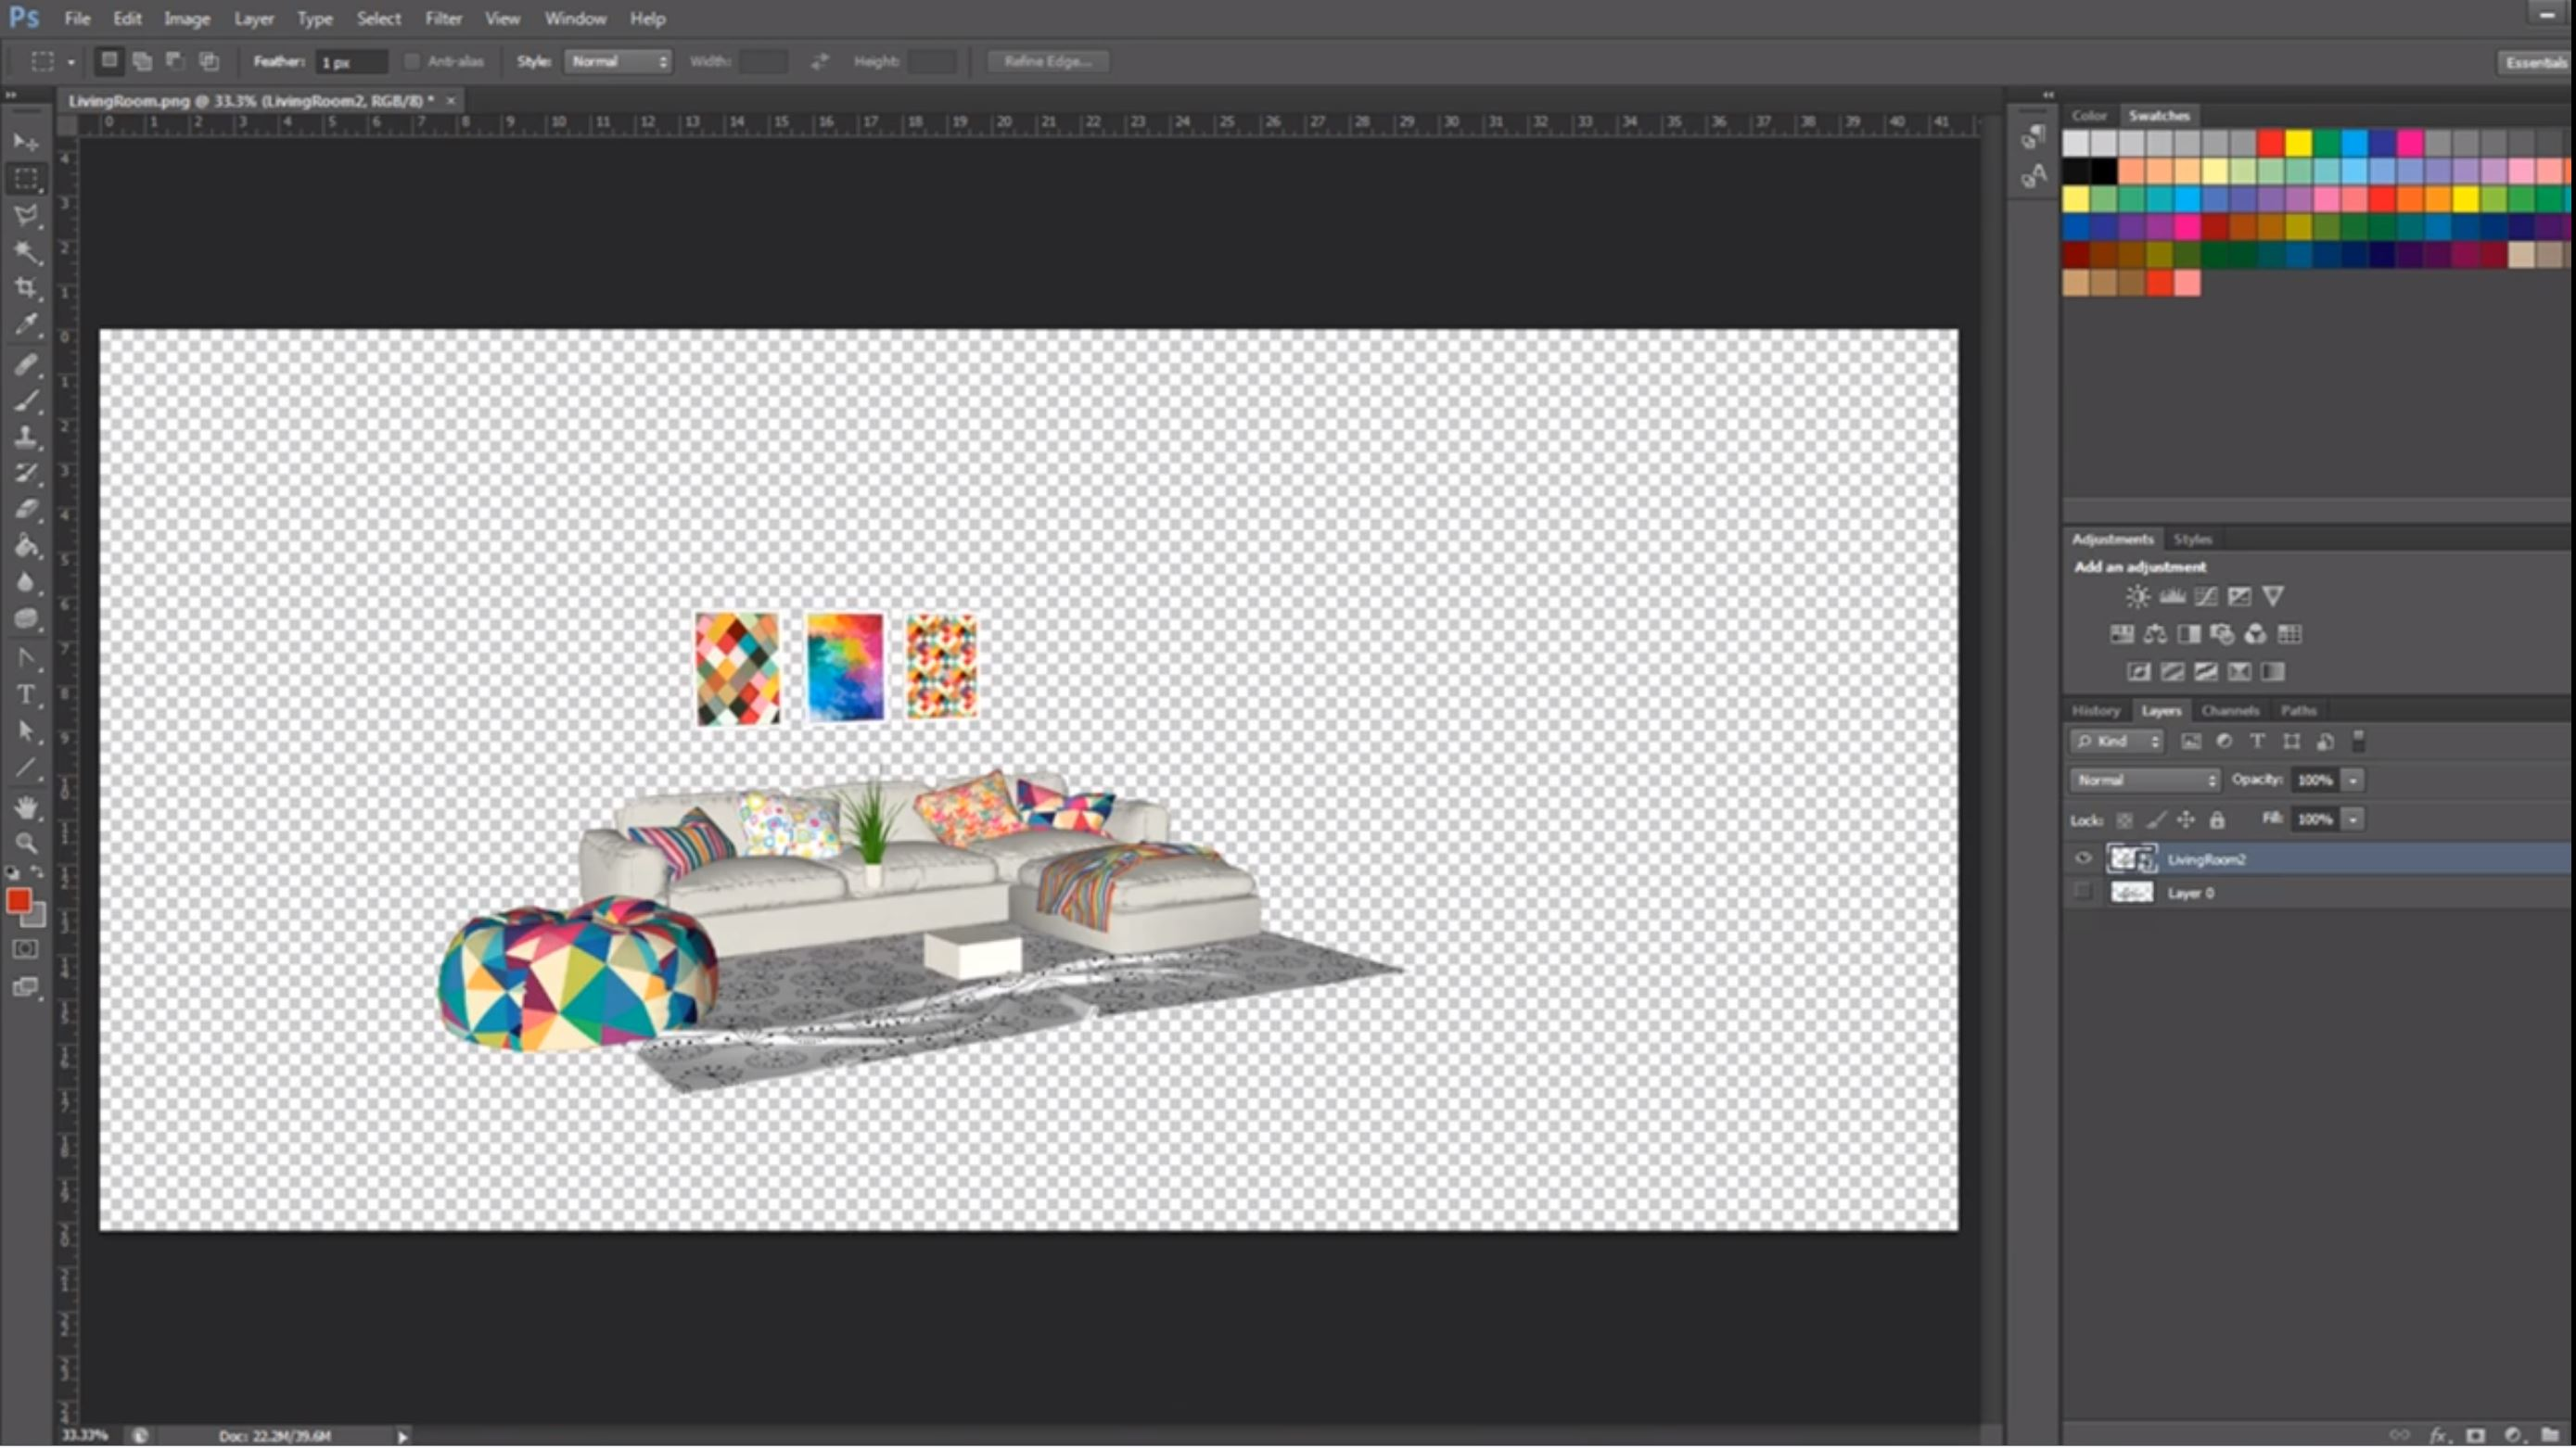 Sketchup PNG in Photoshop